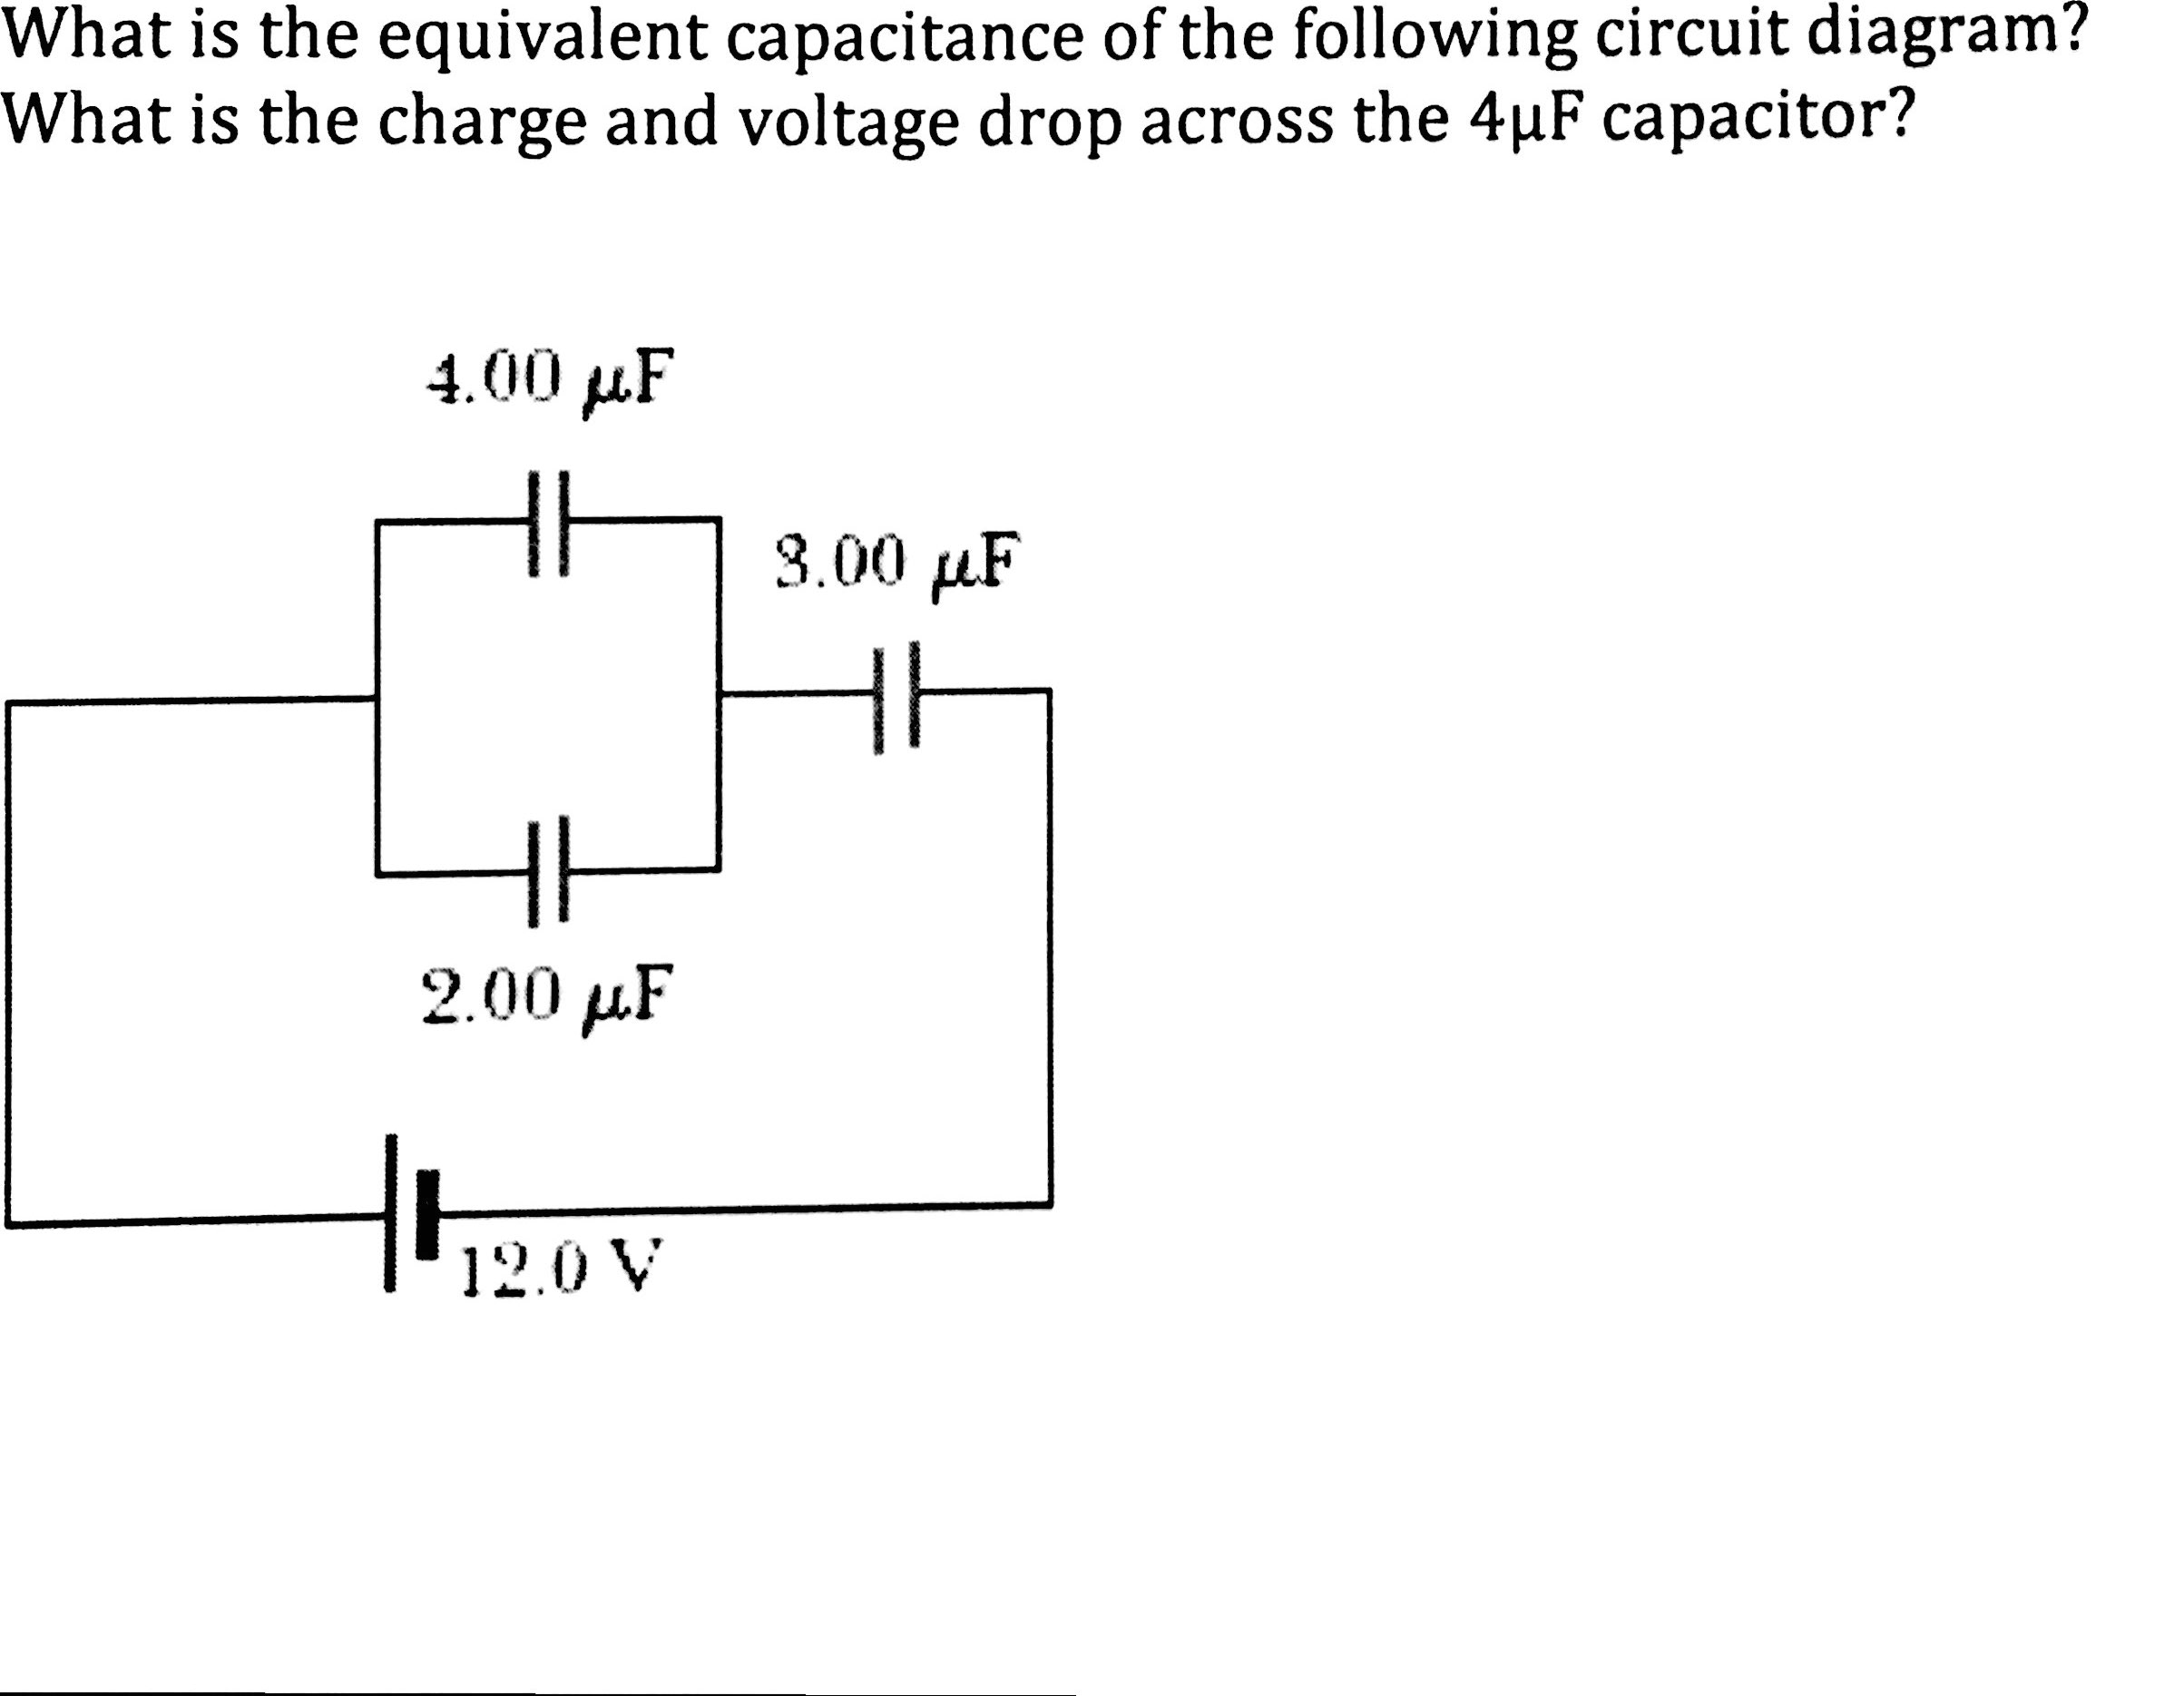 image for what is the equivalent capacitance of the following circuit  diagram? what is the